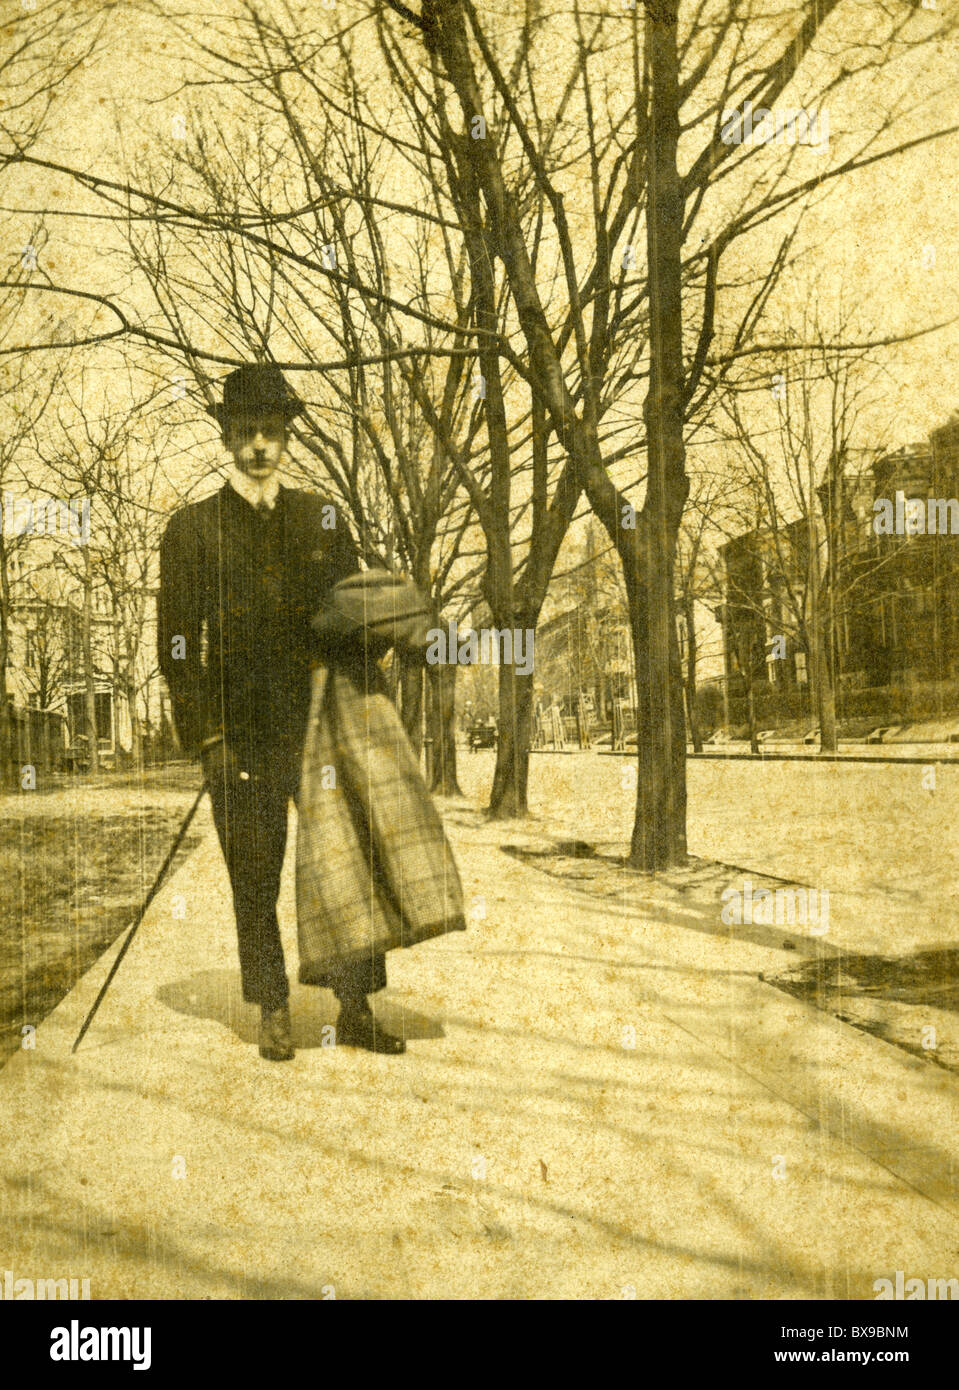 man dressed in black hat fashion walking on sidewalk during 1890s Americana black and white - Stock Image